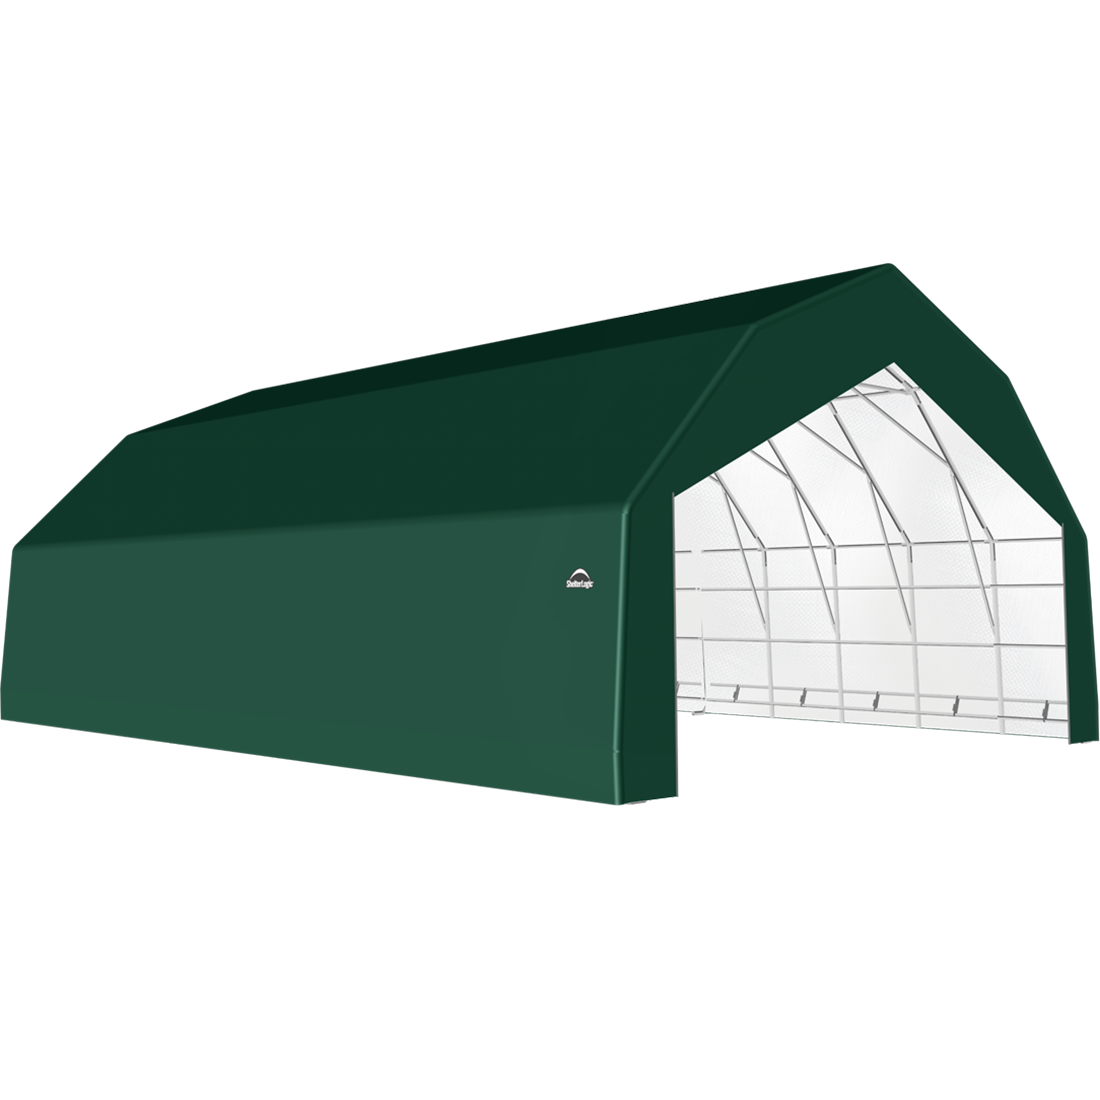 ShelterTech SP Series Barn Shelter, 30 ft. x 44 ft. x 18 ft. Heavy Duty PVC 14.5 oz. Green